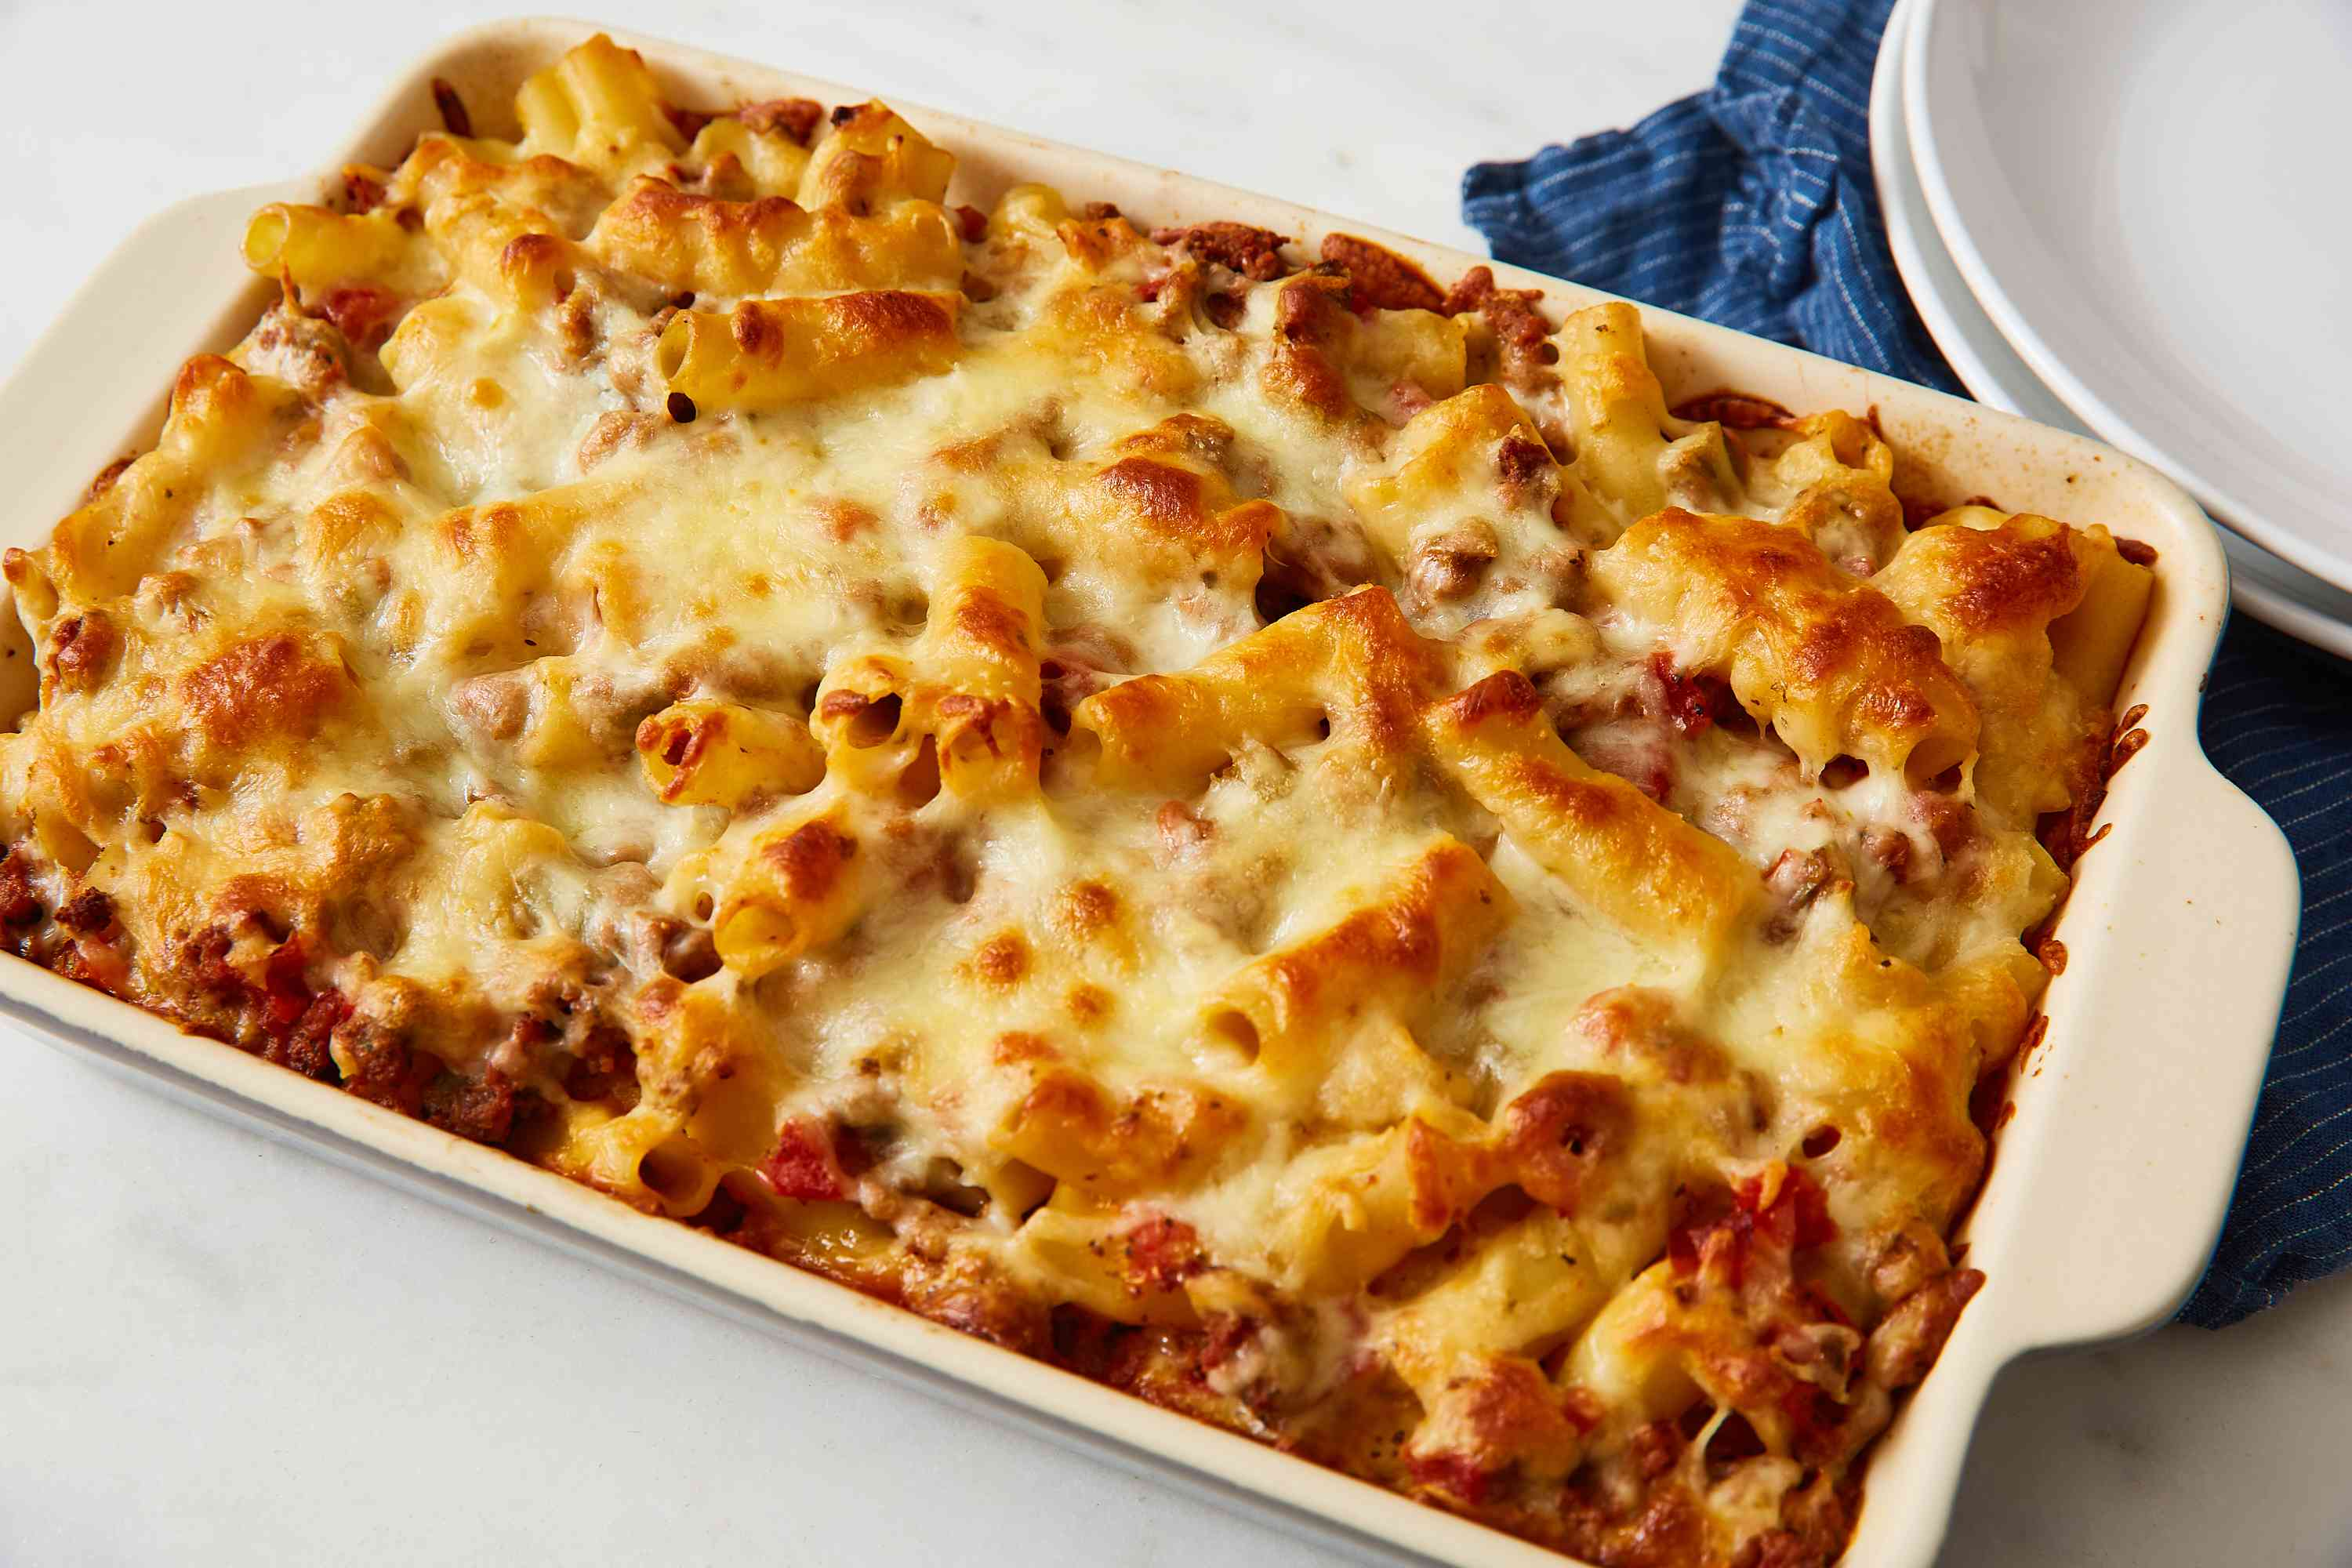 Easy Baked Ziti With Ground Beef and Cheese recipe